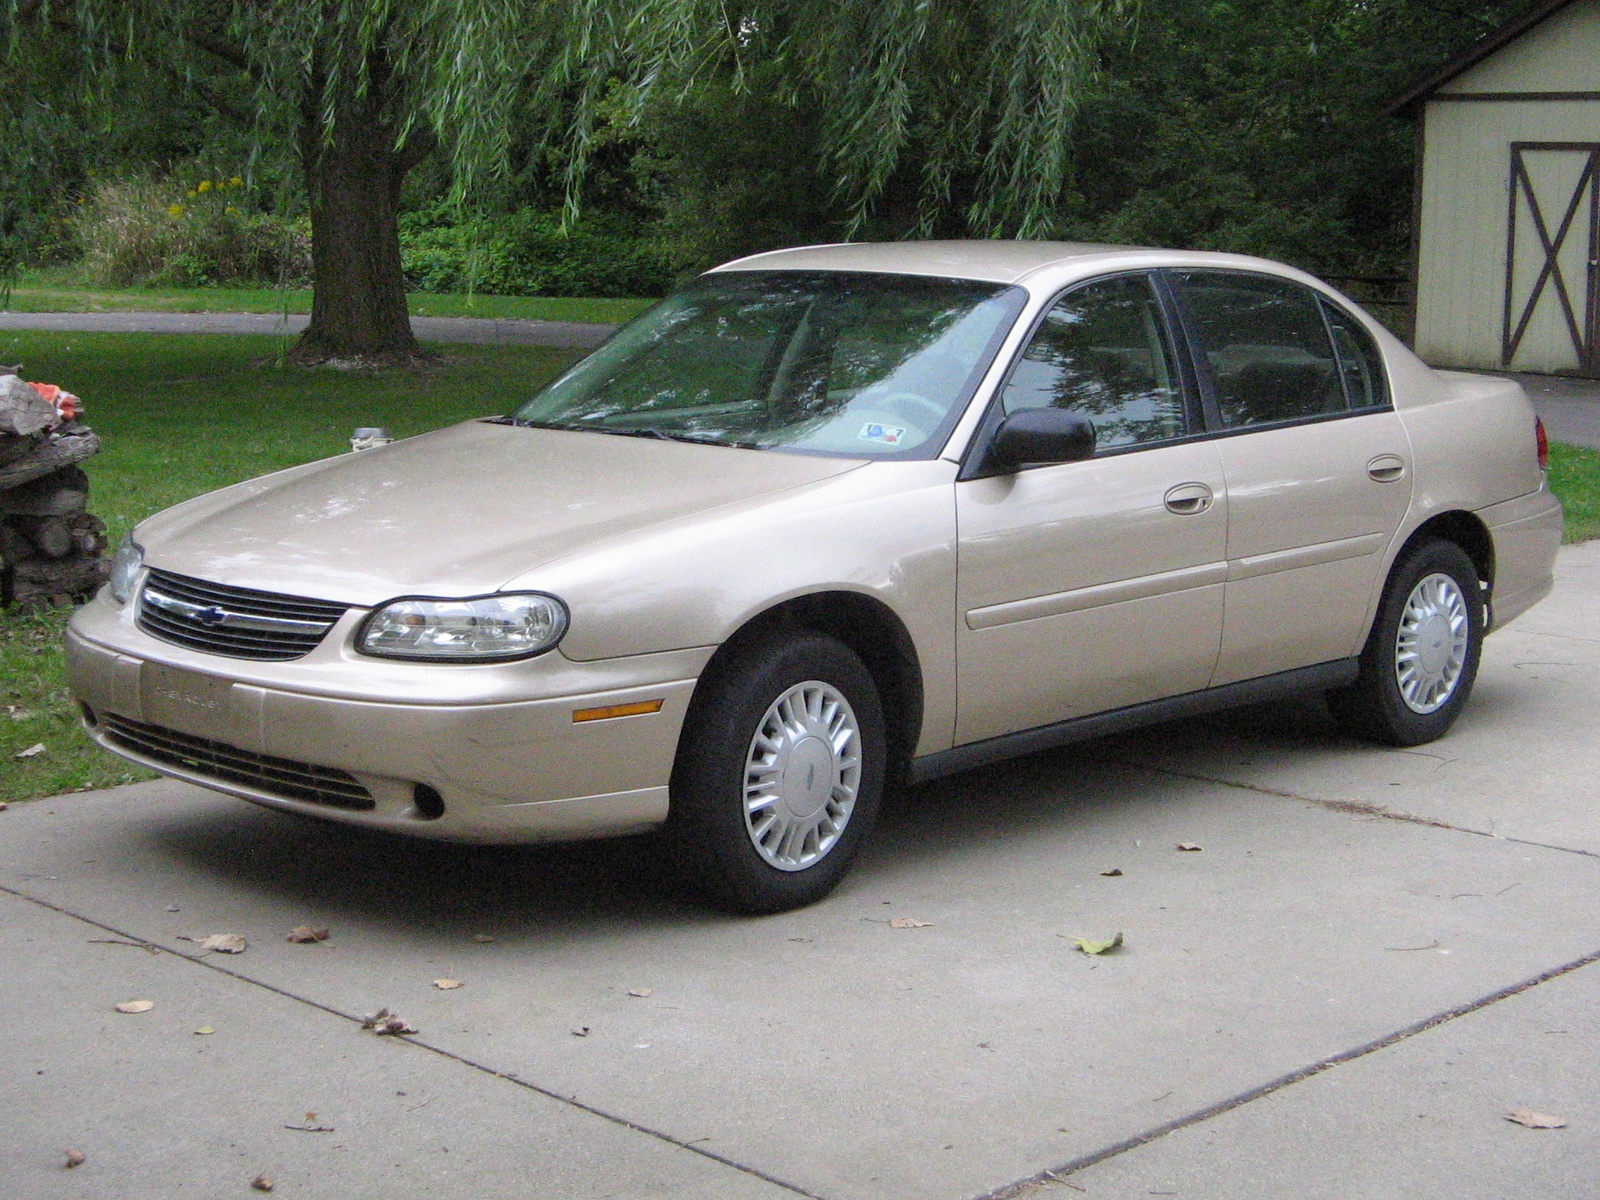 2003 Chevrolet Malibu Base picture